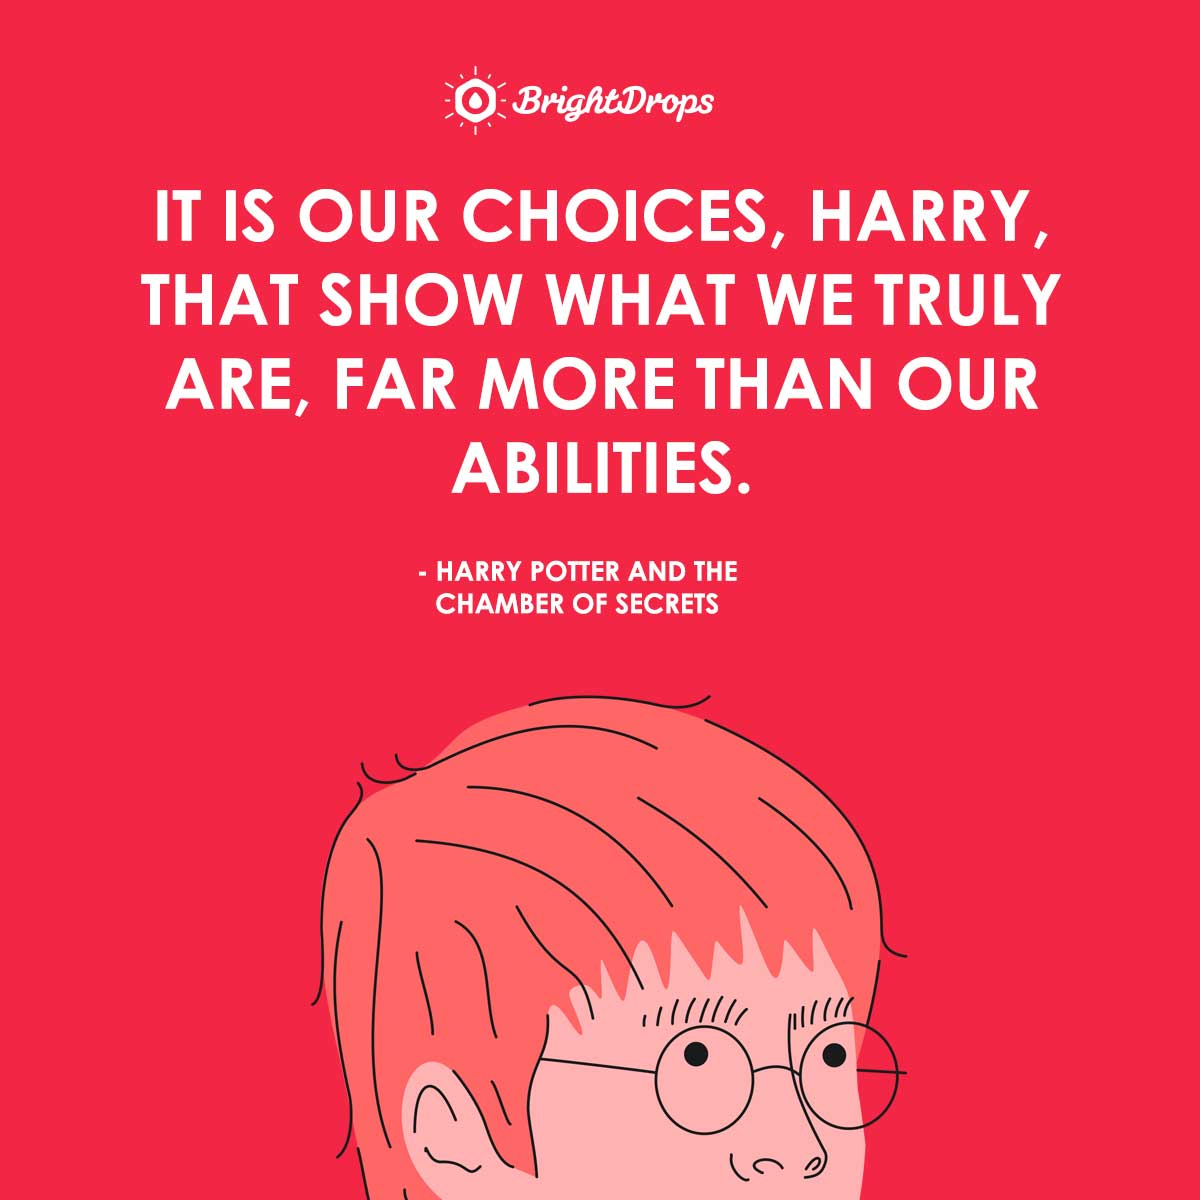 It is our choices, Harry, that show what we truly are, far more than our abilities. - Harry Potter and the Chamber of Secrets